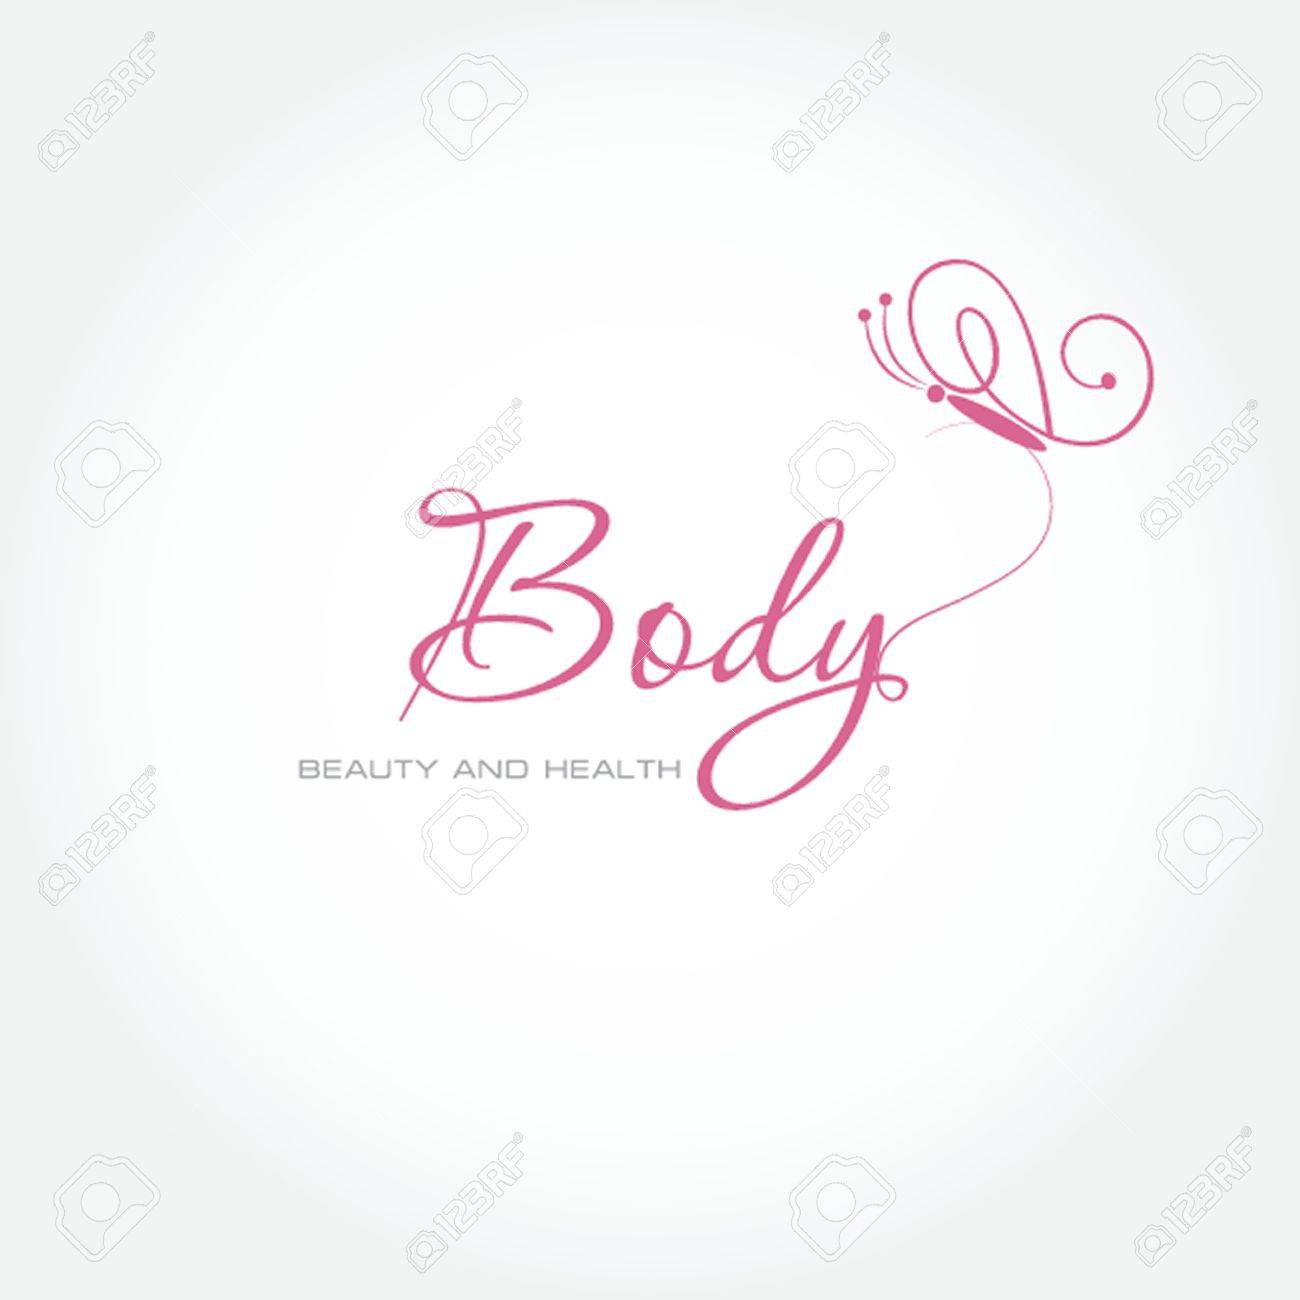 Vector illustration with butterfly symbol logo design for beauty vector illustration with butterfly symbol logo design for beauty salon spa center biocorpaavc Image collections